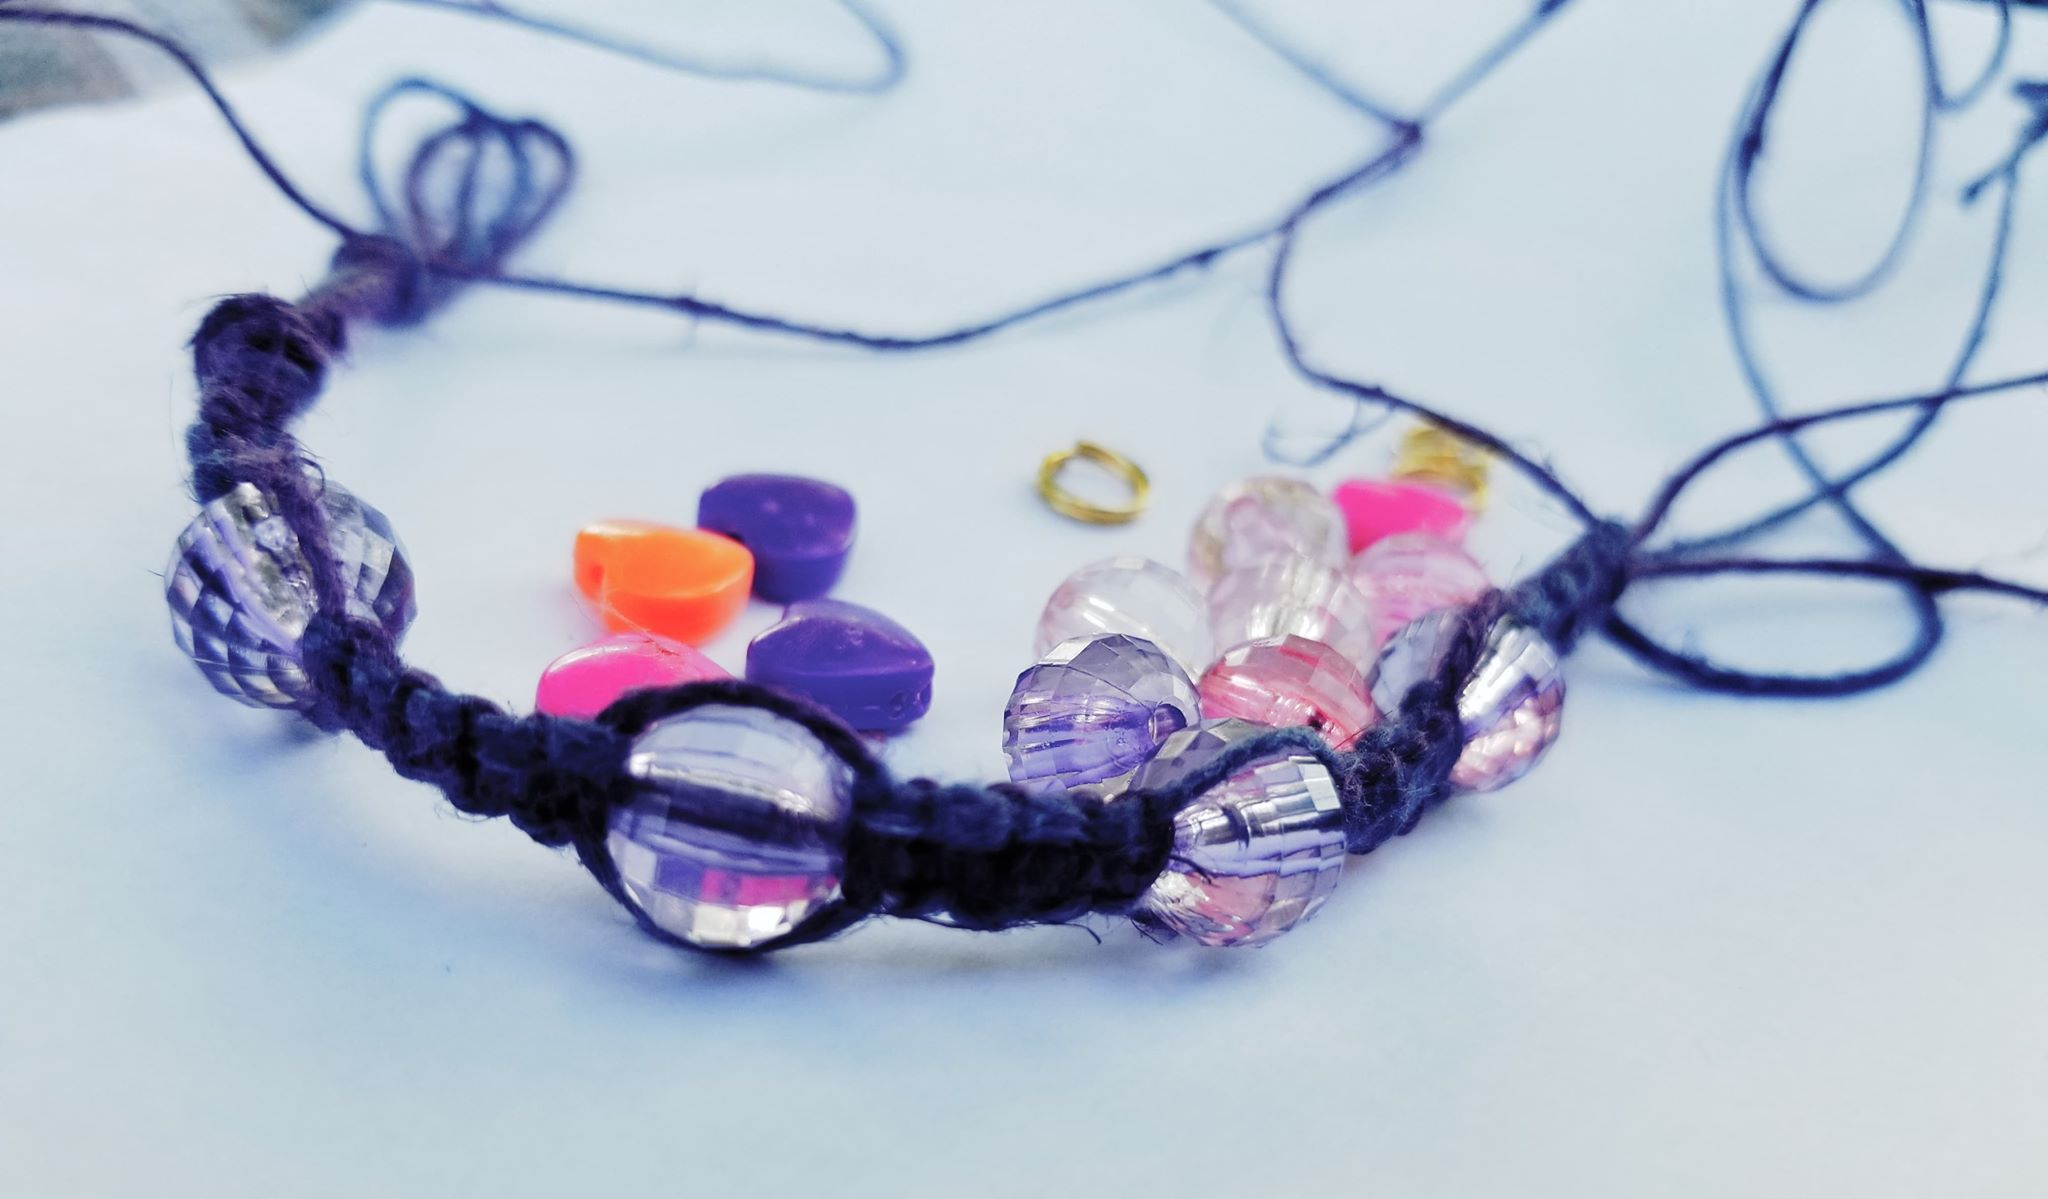 Macrame Bracelet 101 - Hosted by Young Entrepreneur Katia